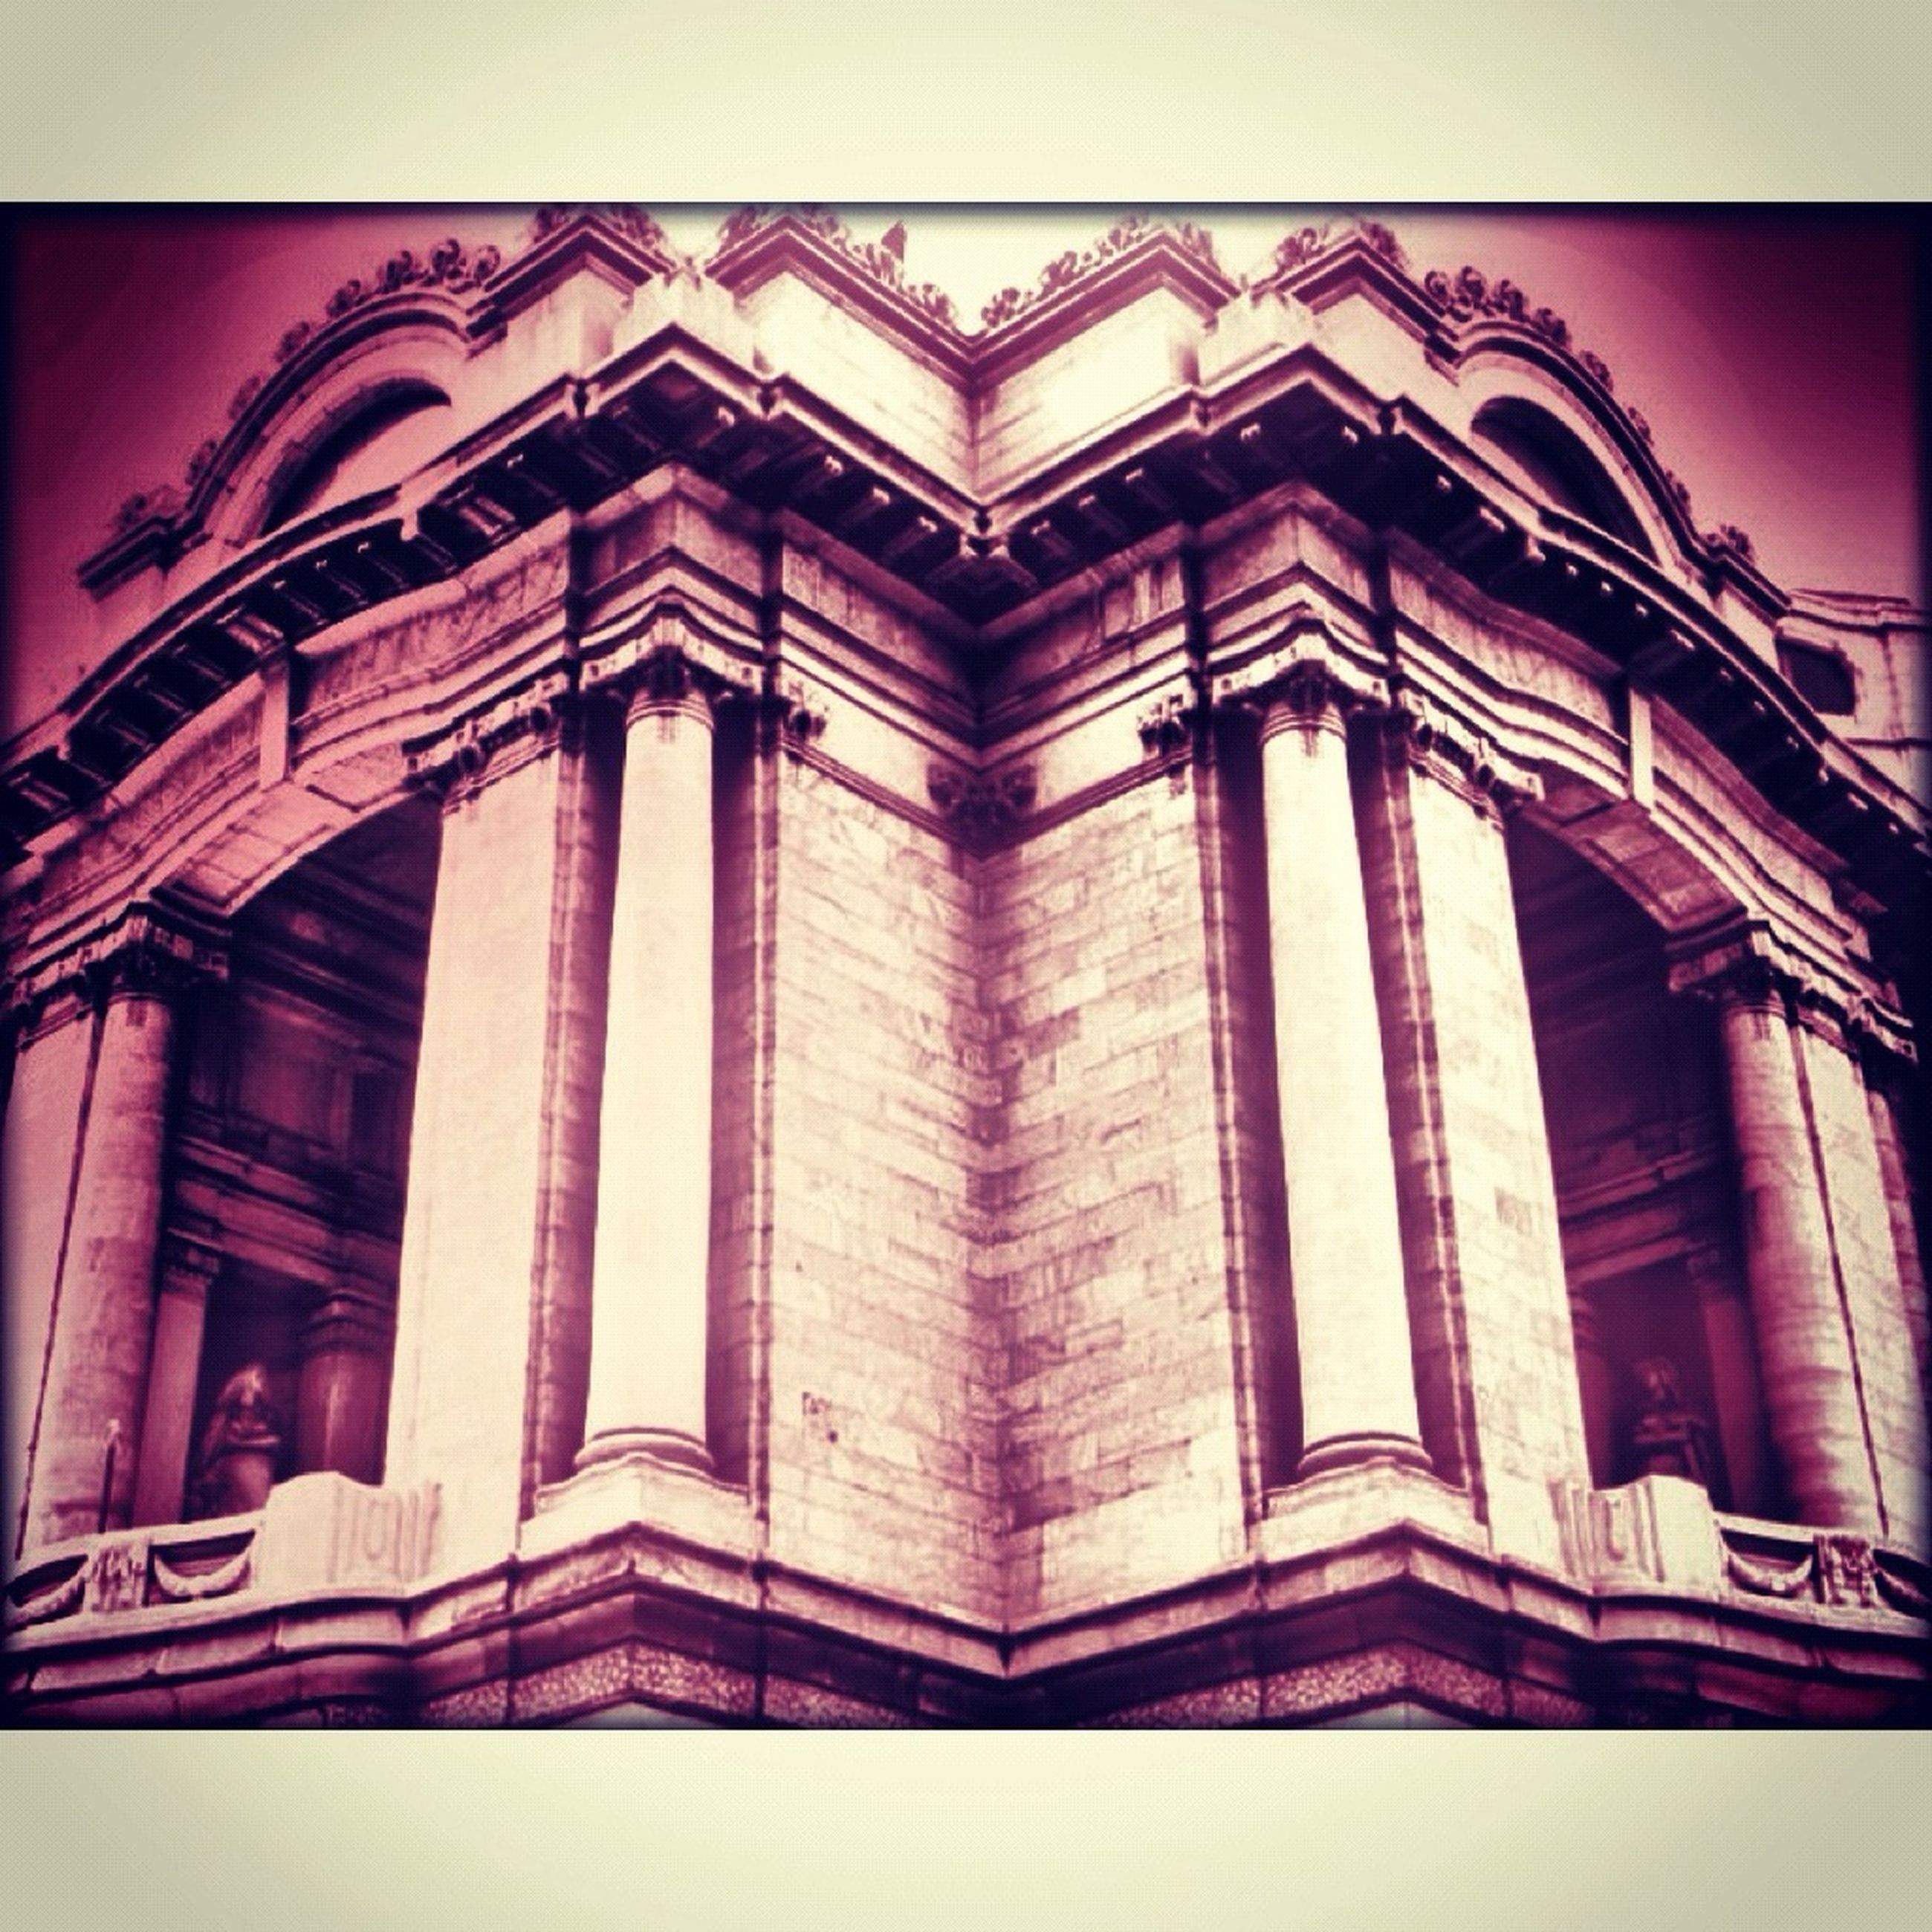 architecture, built structure, low angle view, building exterior, transfer print, auto post production filter, window, ornate, art and craft, architectural feature, design, history, art, pattern, building, religion, place of worship, no people, facade, creativity